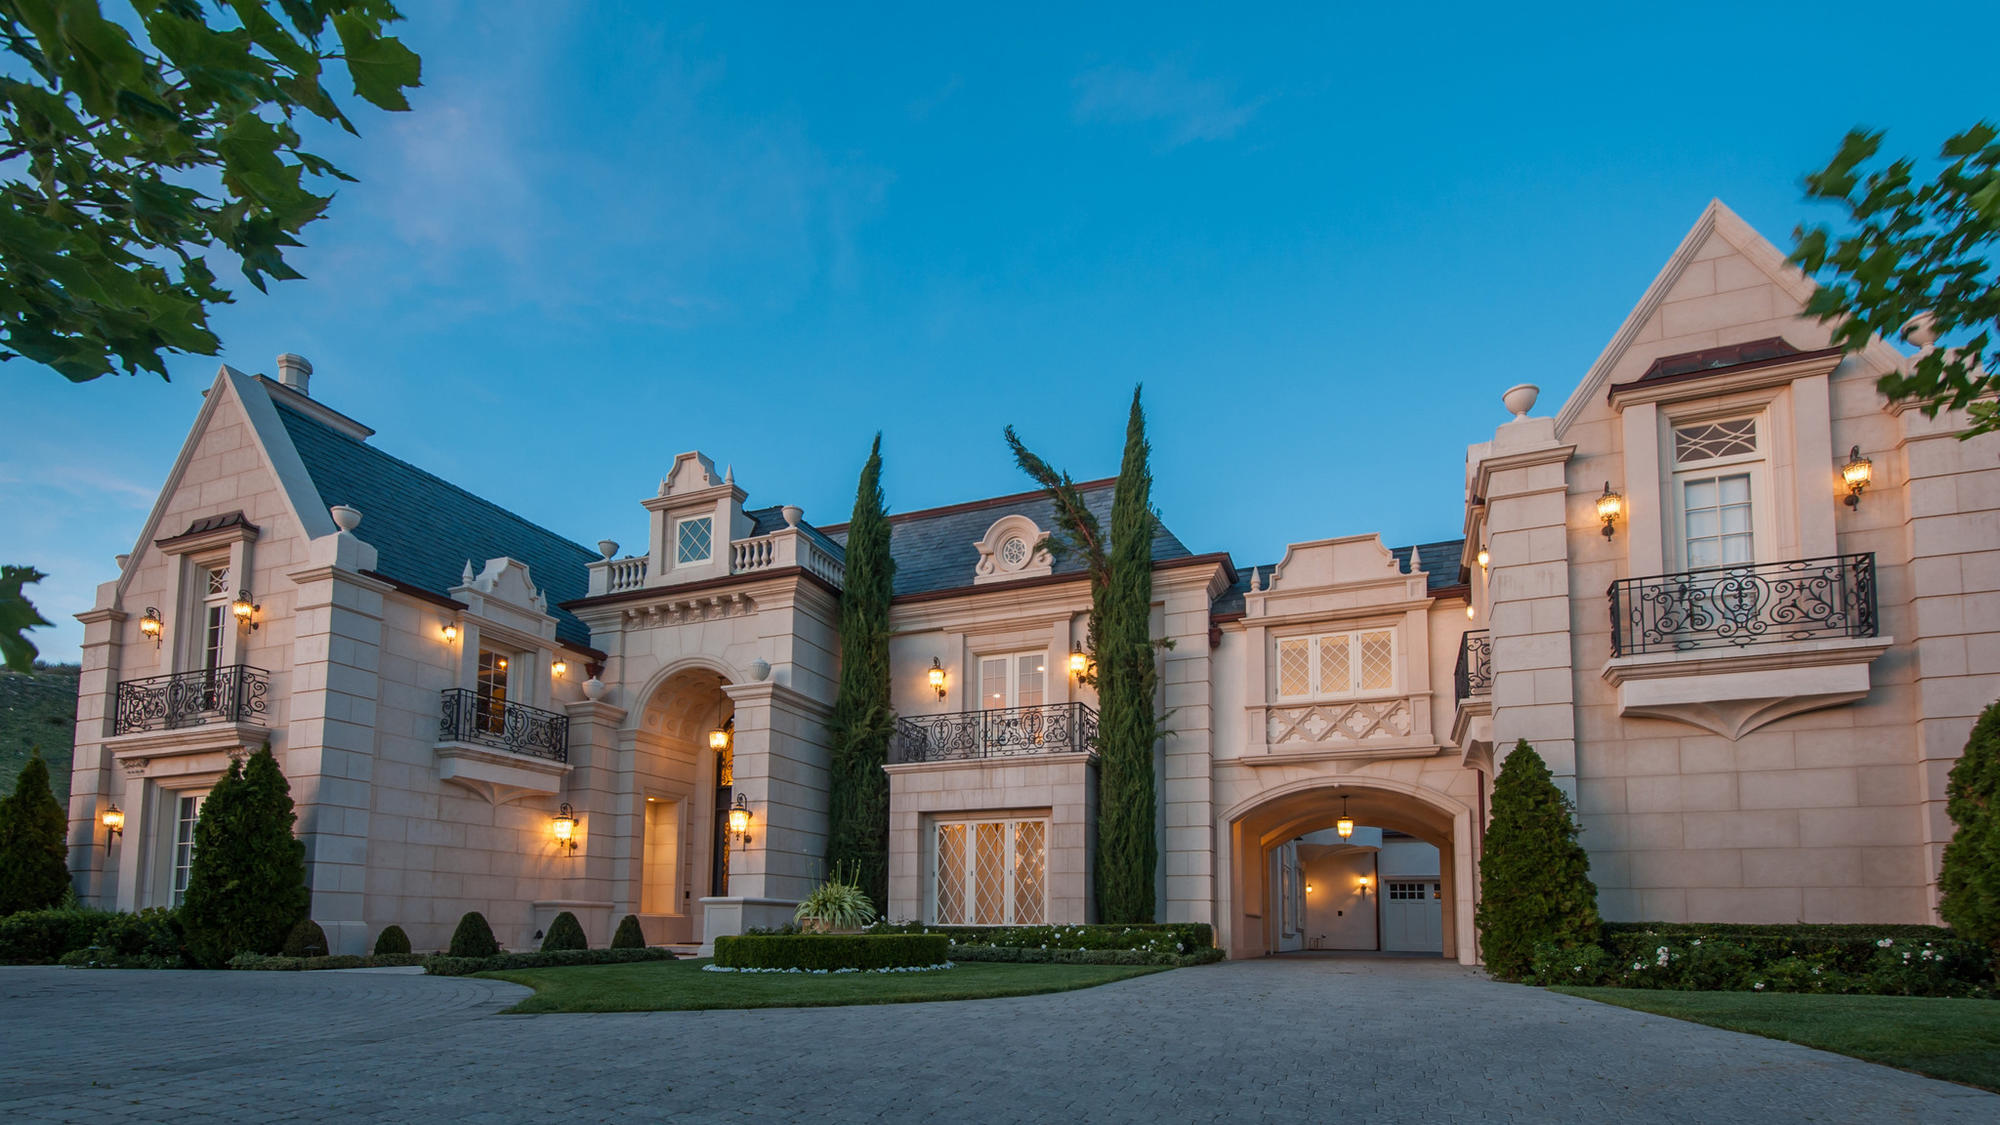 'Dark Knight' producer Thomas Tull seeks $85 million for epic compound in Thousand Oaks